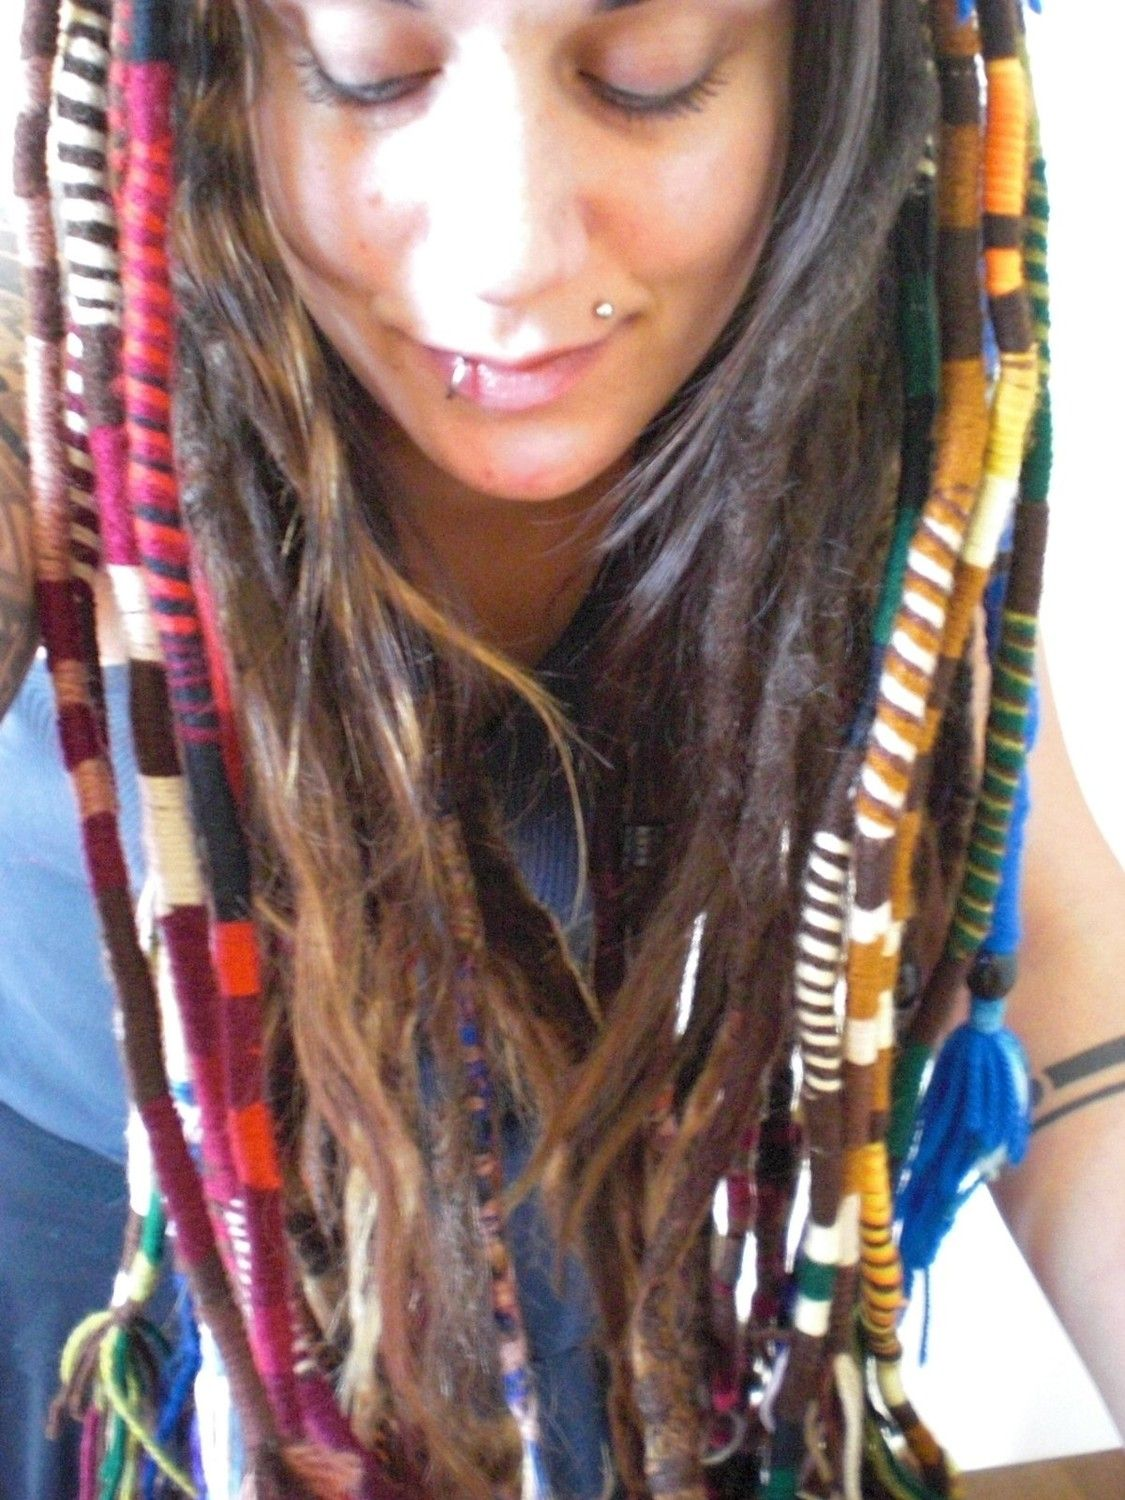 Hair wraps google search hair pinterest dreads dreadlock items similar to 6 custom thick hair wrap extension striped yarn atebas single ended loop braid in dread accessories rainbow yarns colors on etsy pmusecretfo Image collections